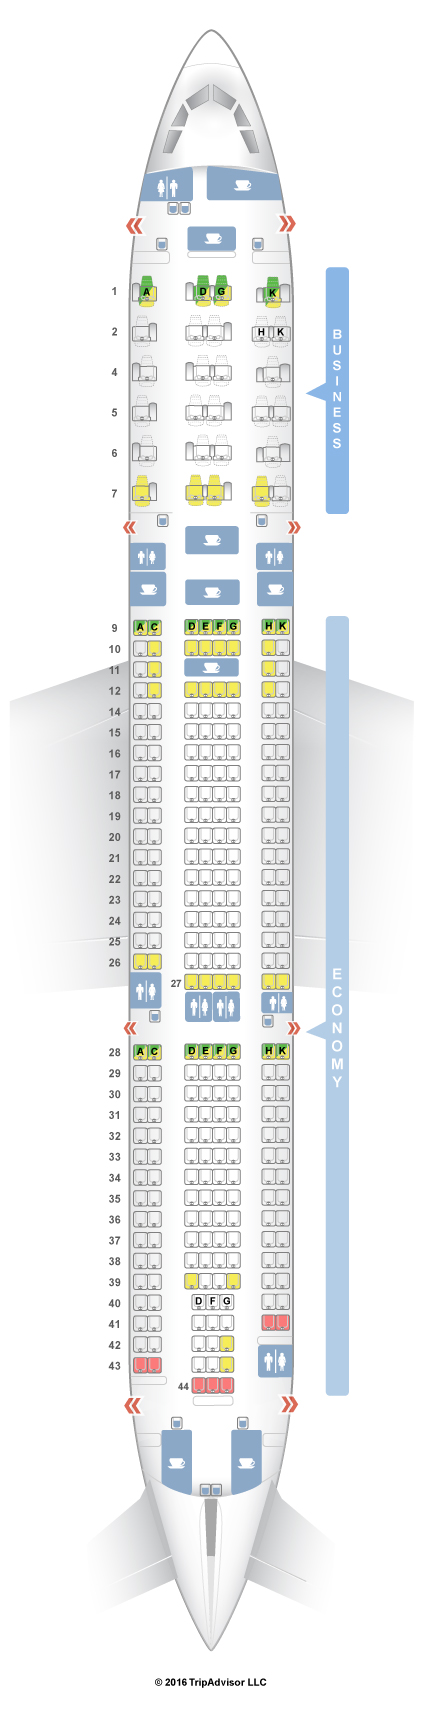 SeatGuru Seat Map Malaysia Airlines Airbus A330-300 (333) V1